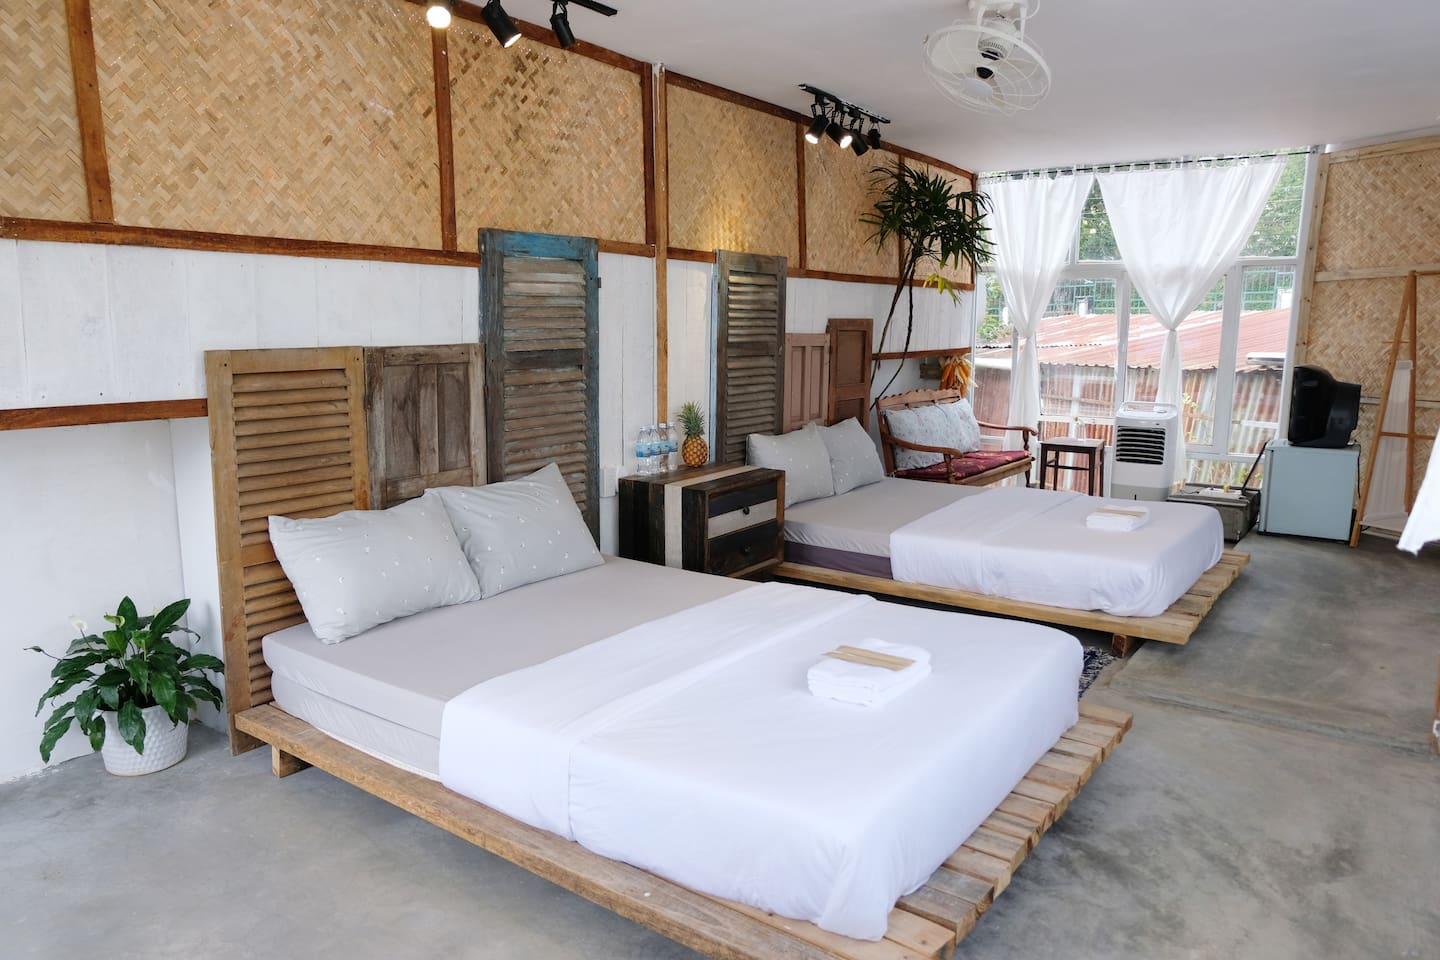 Room G4: 2 double-beds for 4 pax, with inside privated bathroom. guests have to take the wooden stairs outside the house to get in room